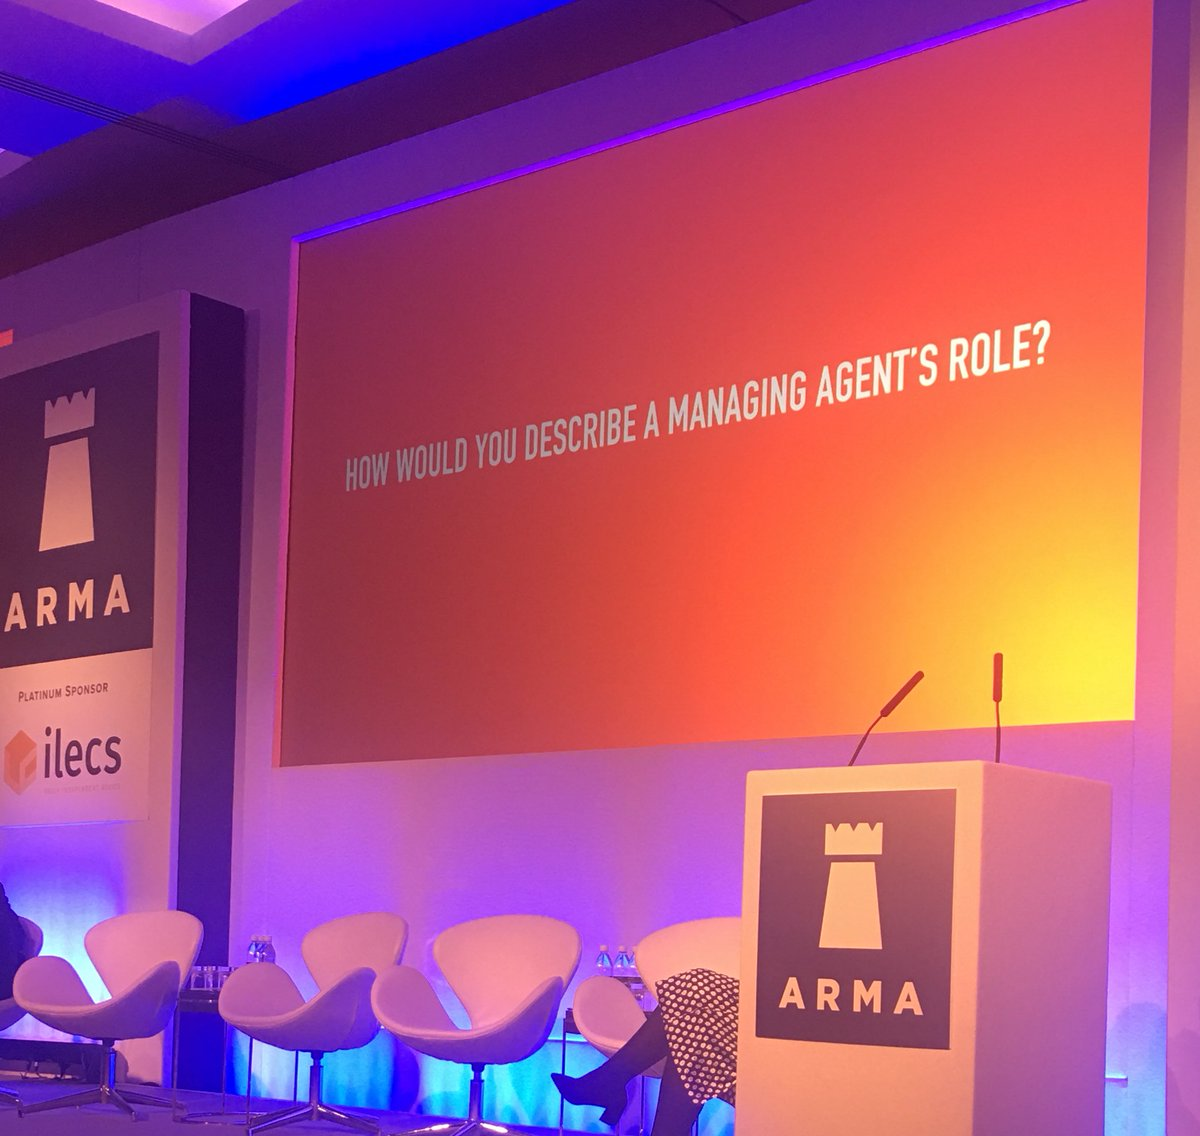 Debra &amp; Charles from @SAYProperty highlight the importance of #developers designing &amp; building blocks for #management #ARMAConf2017<br>http://pic.twitter.com/9Ns9N0Se48